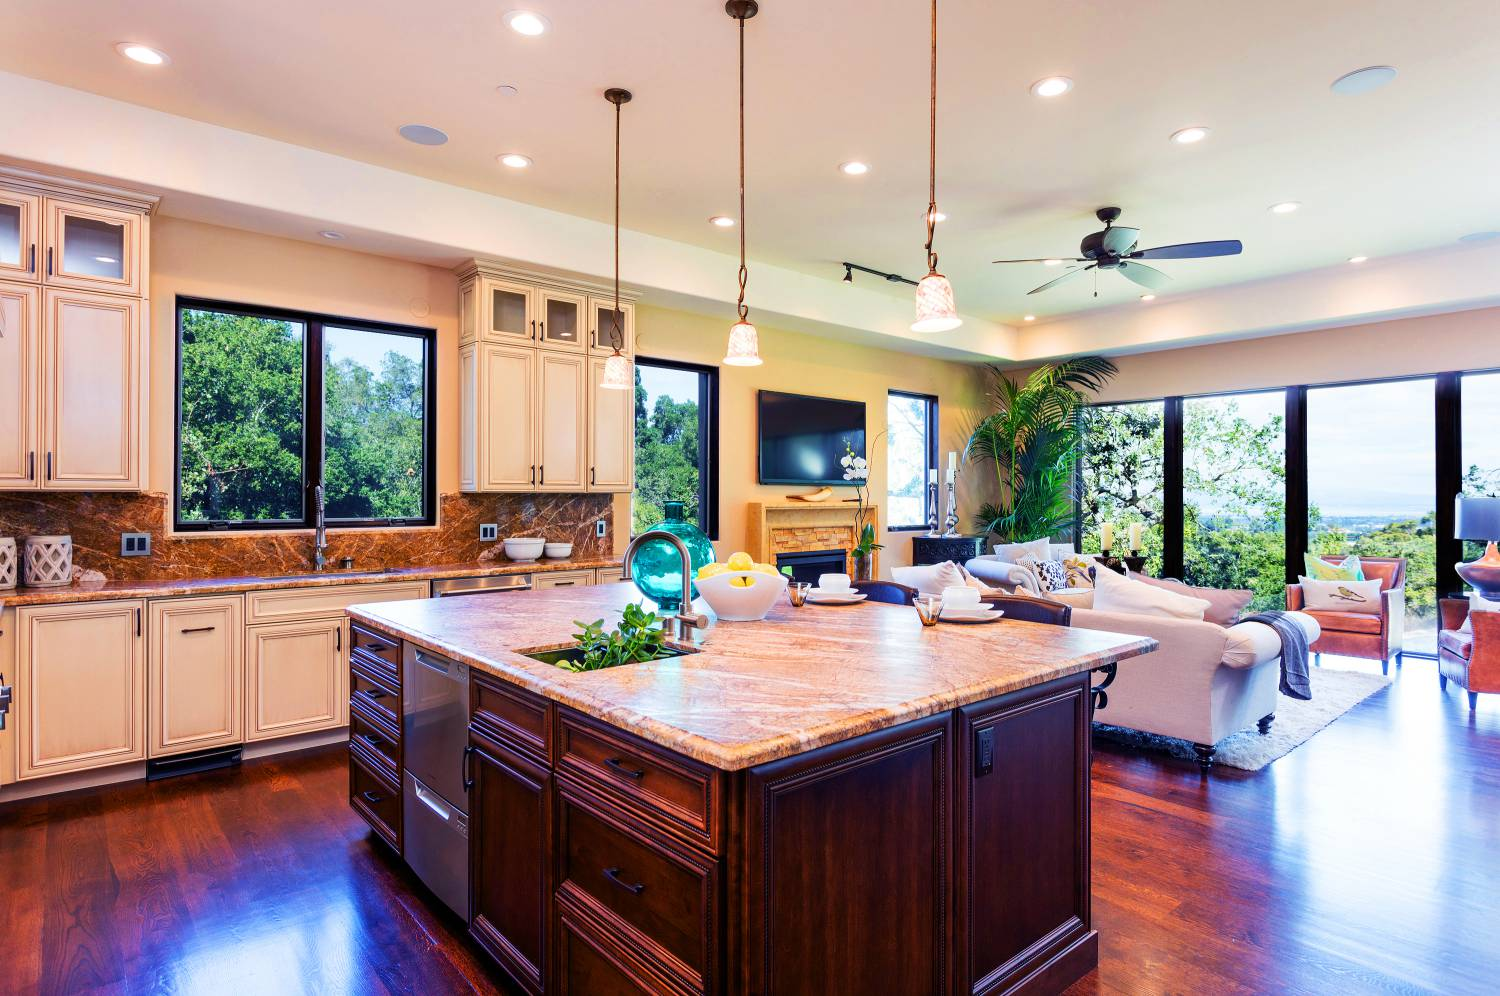 Kitchen Family Room, best interior design work, Los Altos Hills